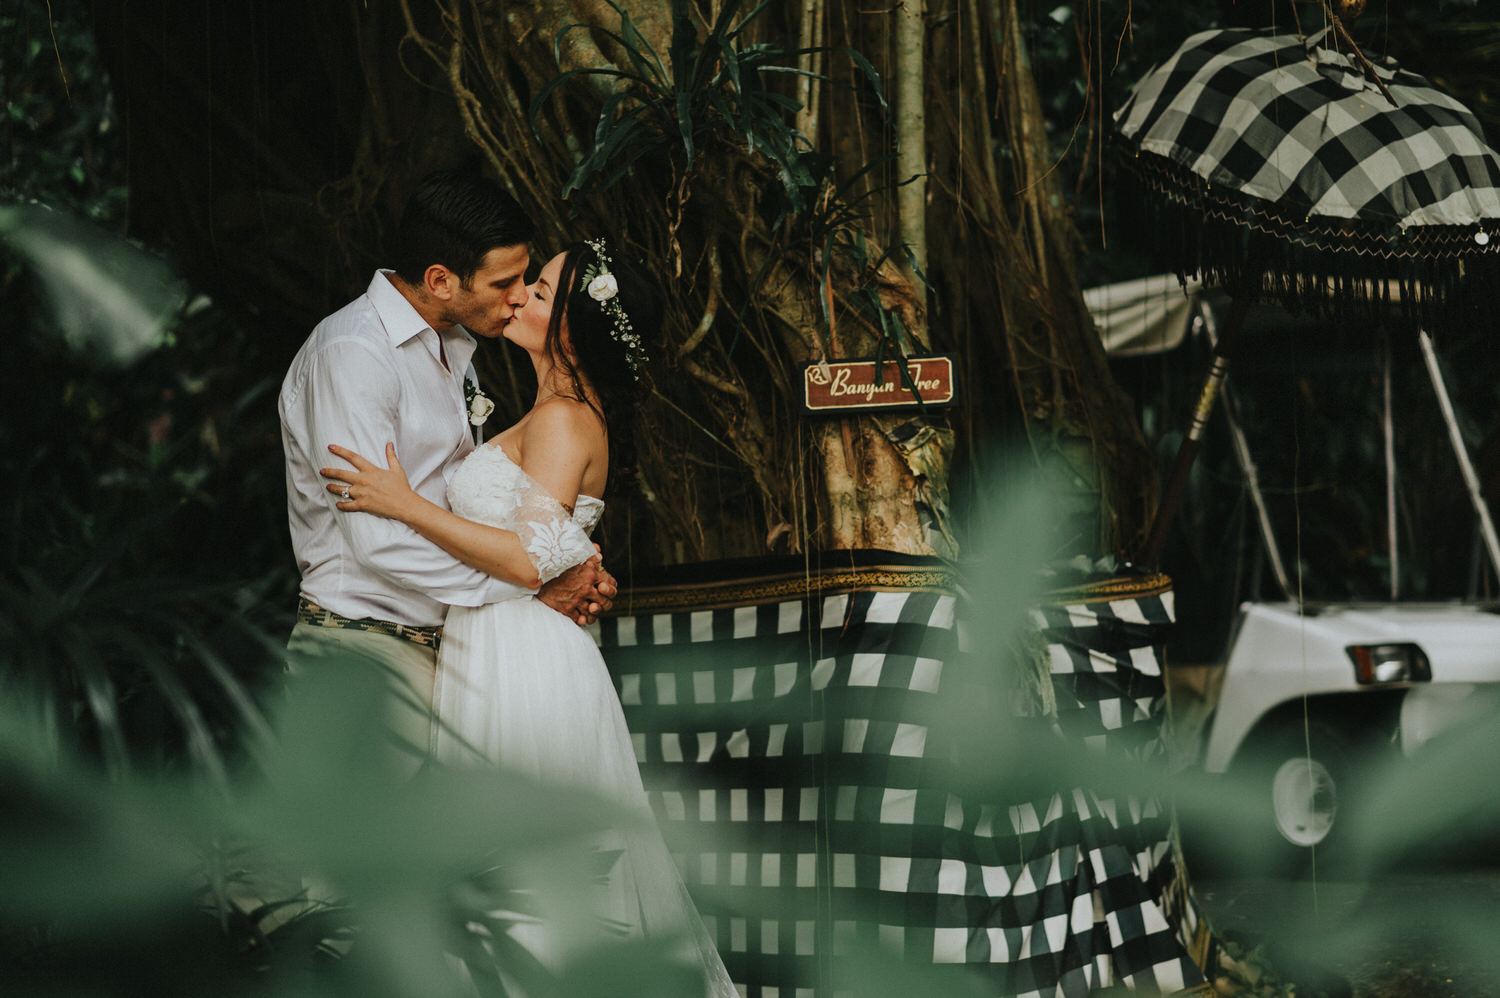 bali wedding - elopement - ubud wedding - diktatphotography - olga + Jason - 62